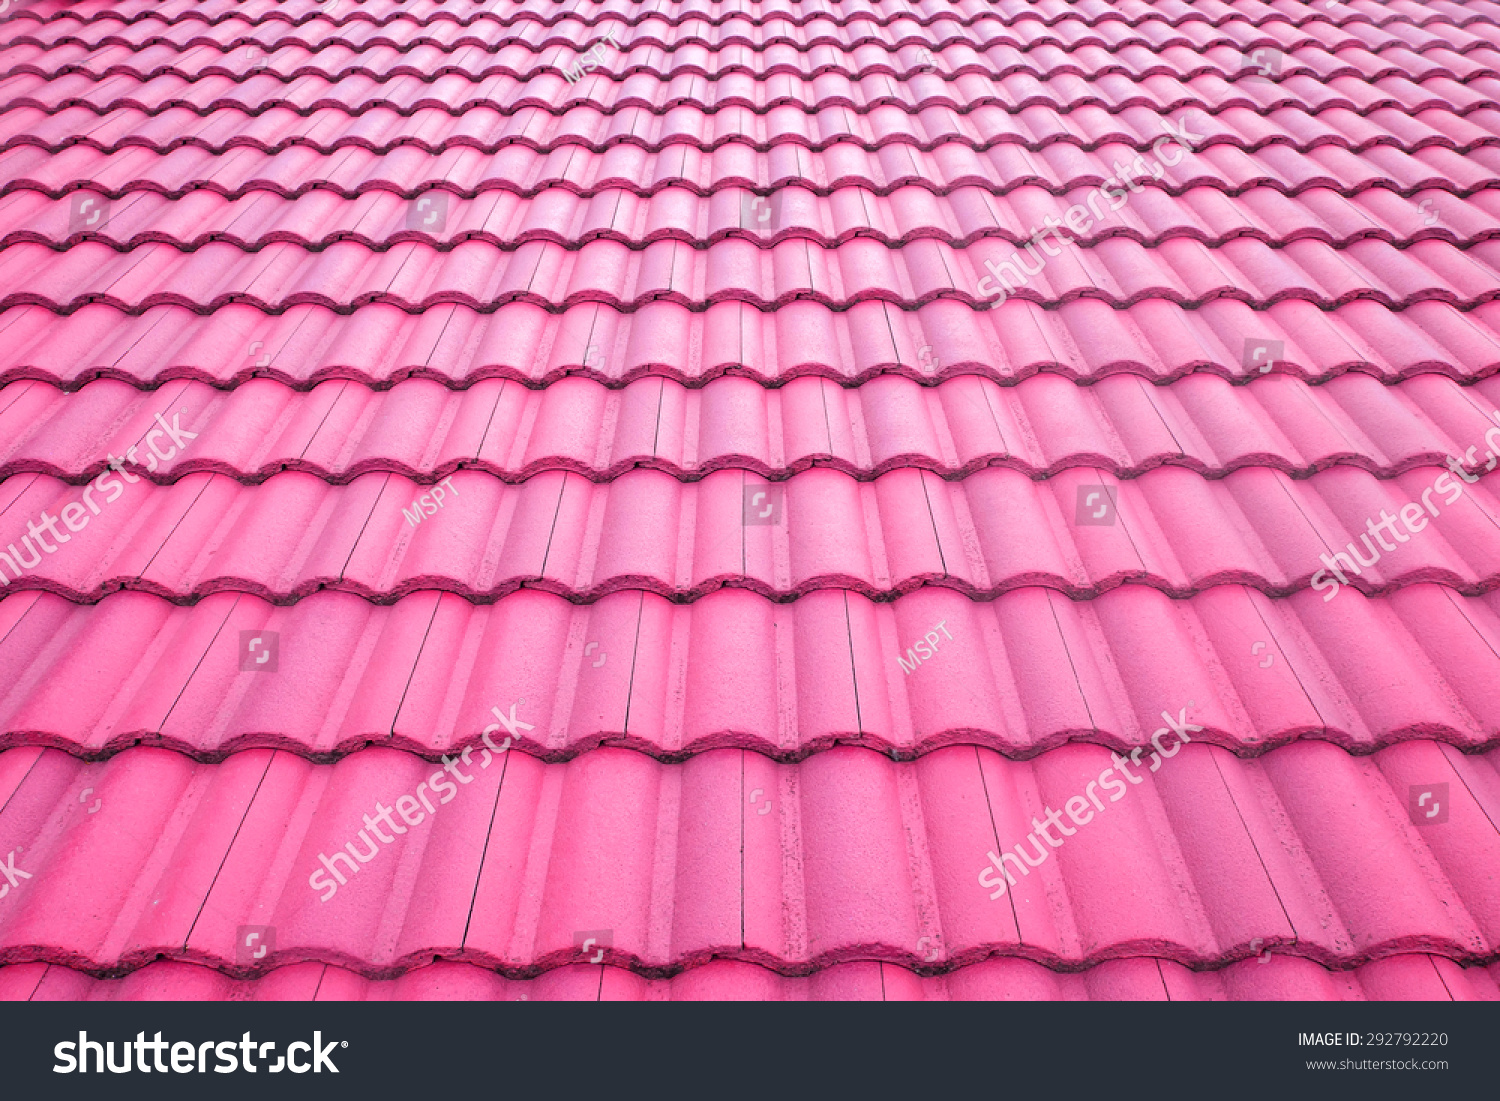 Pink Roof Tiles Amp Master Coppo Roofing Tiles